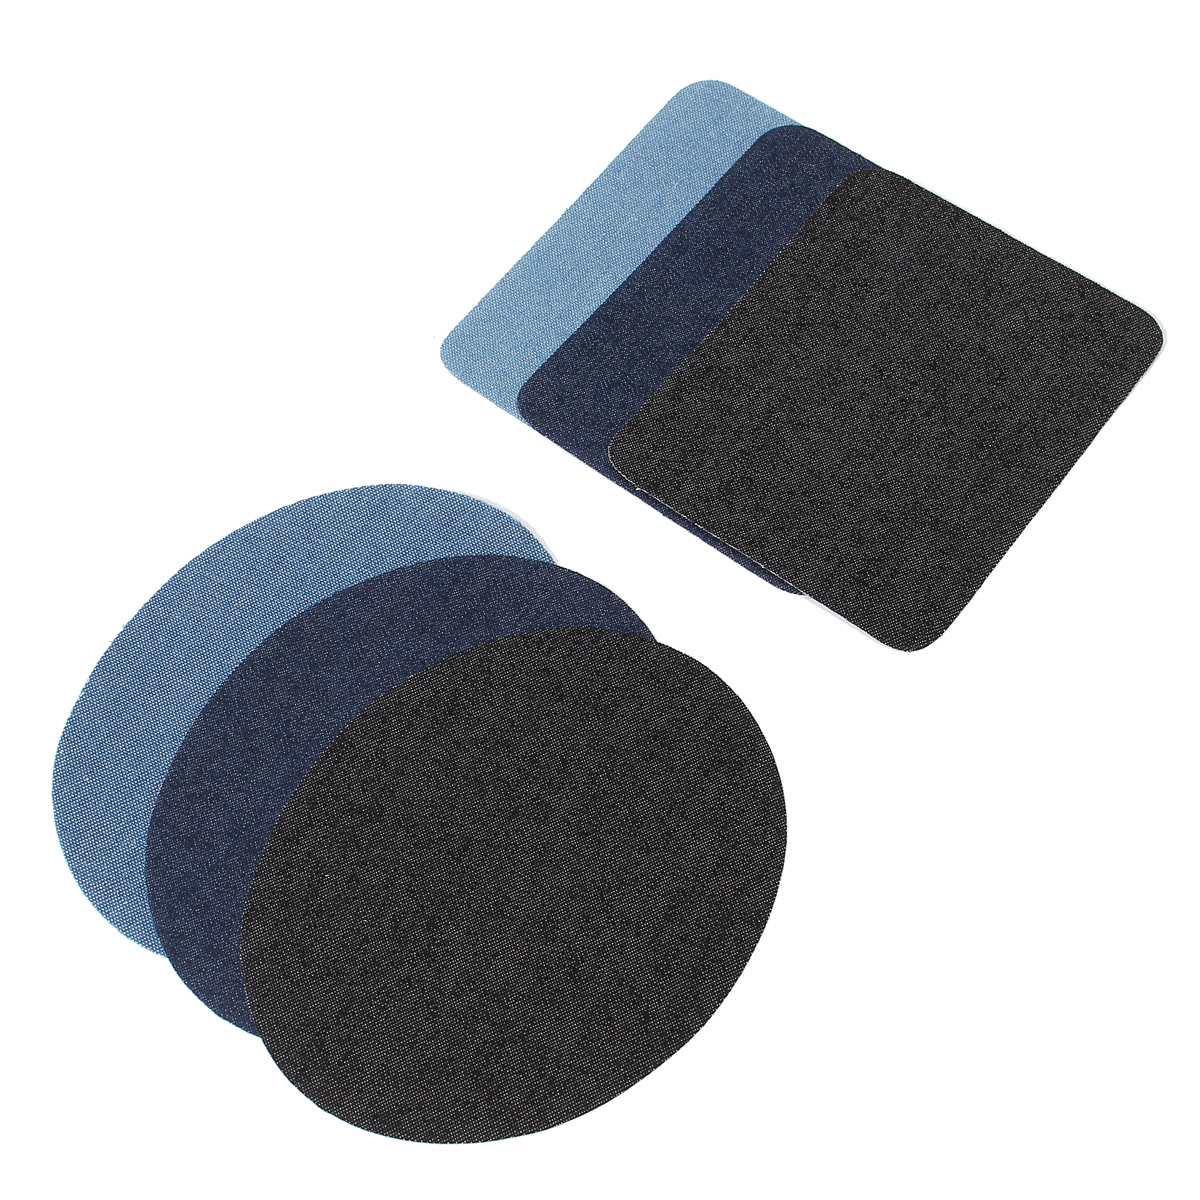 12Pcs Assorted Iron on Jeans Denim/Twill/Cotton Patches Repair Tool Elbow Knee Patch Sewing